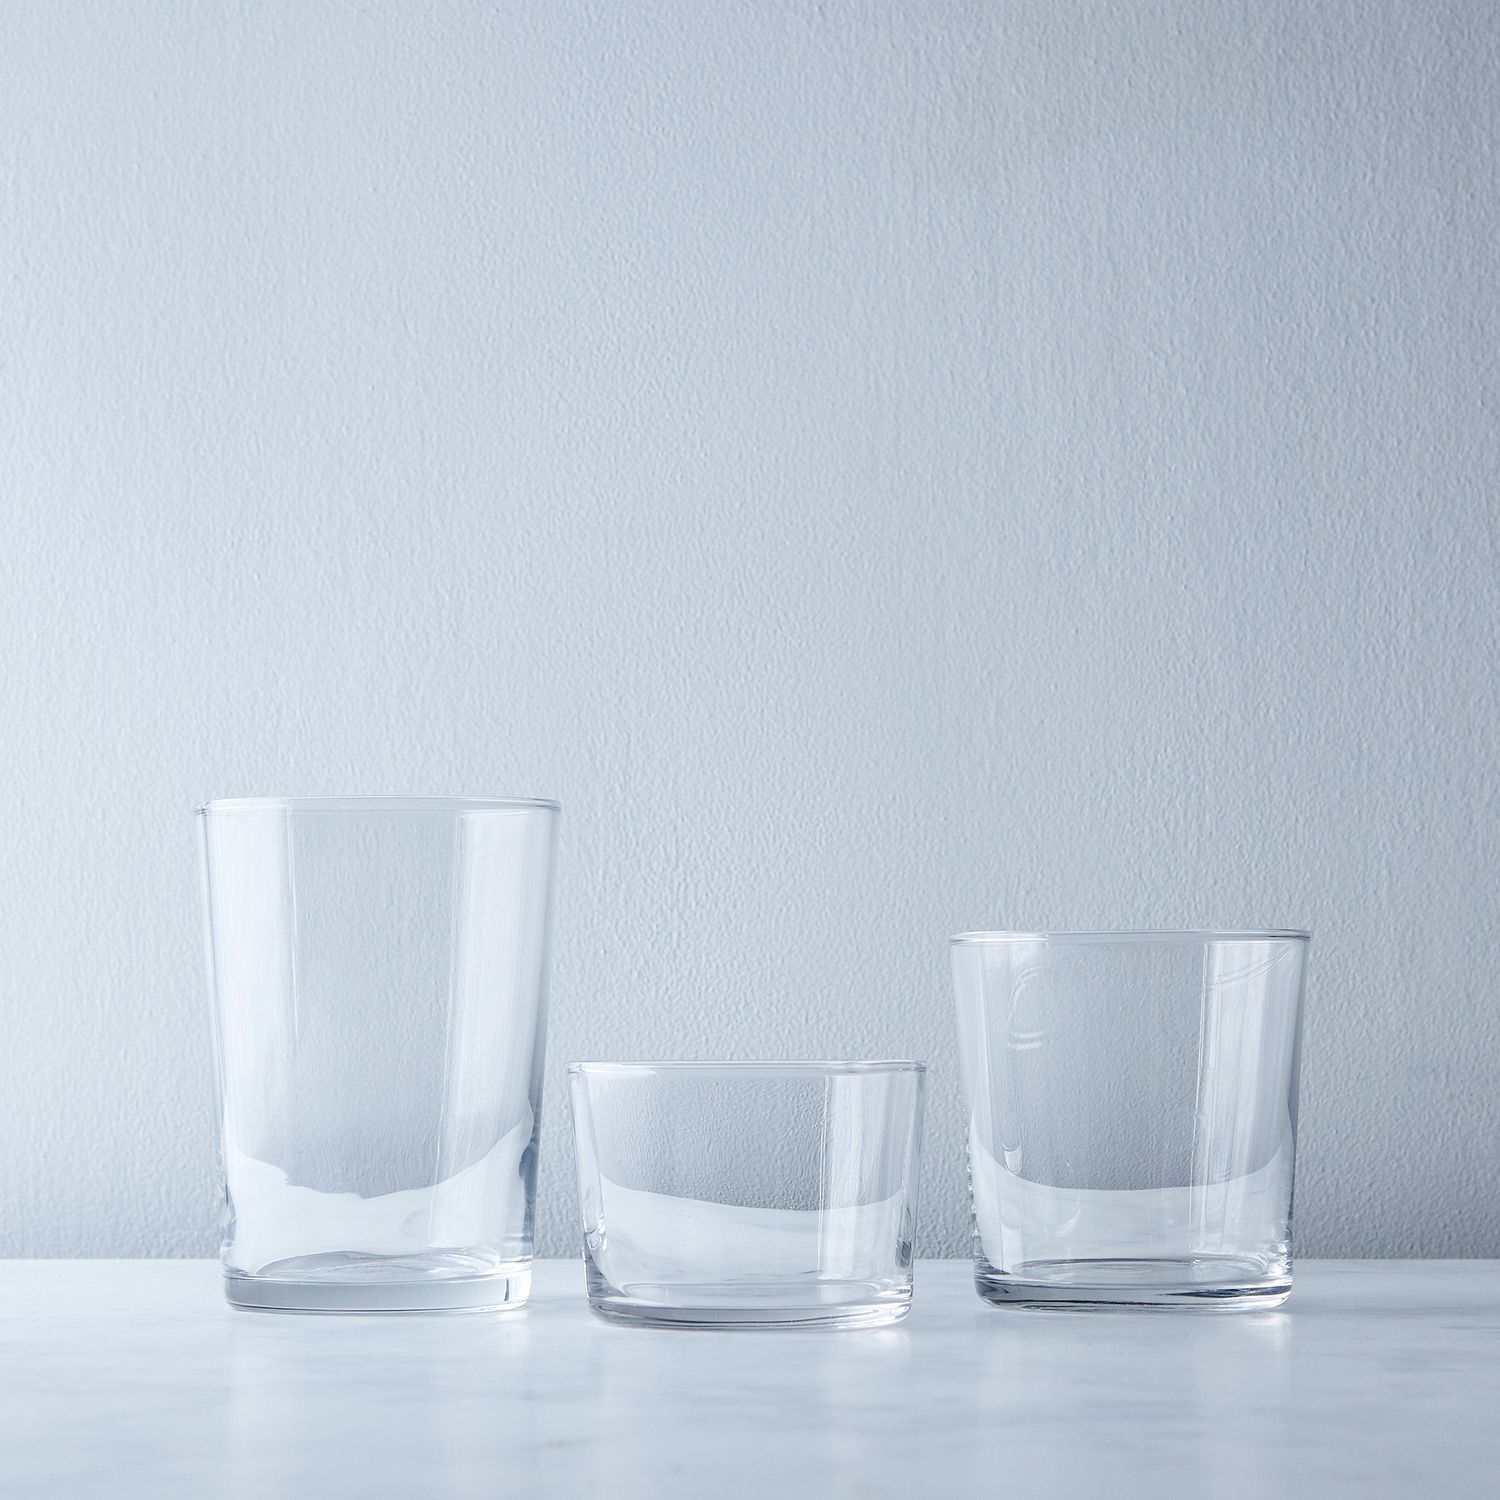 Stackable Bodega Glasses (Set of 12) | Glass, Kitchens and Tabletop